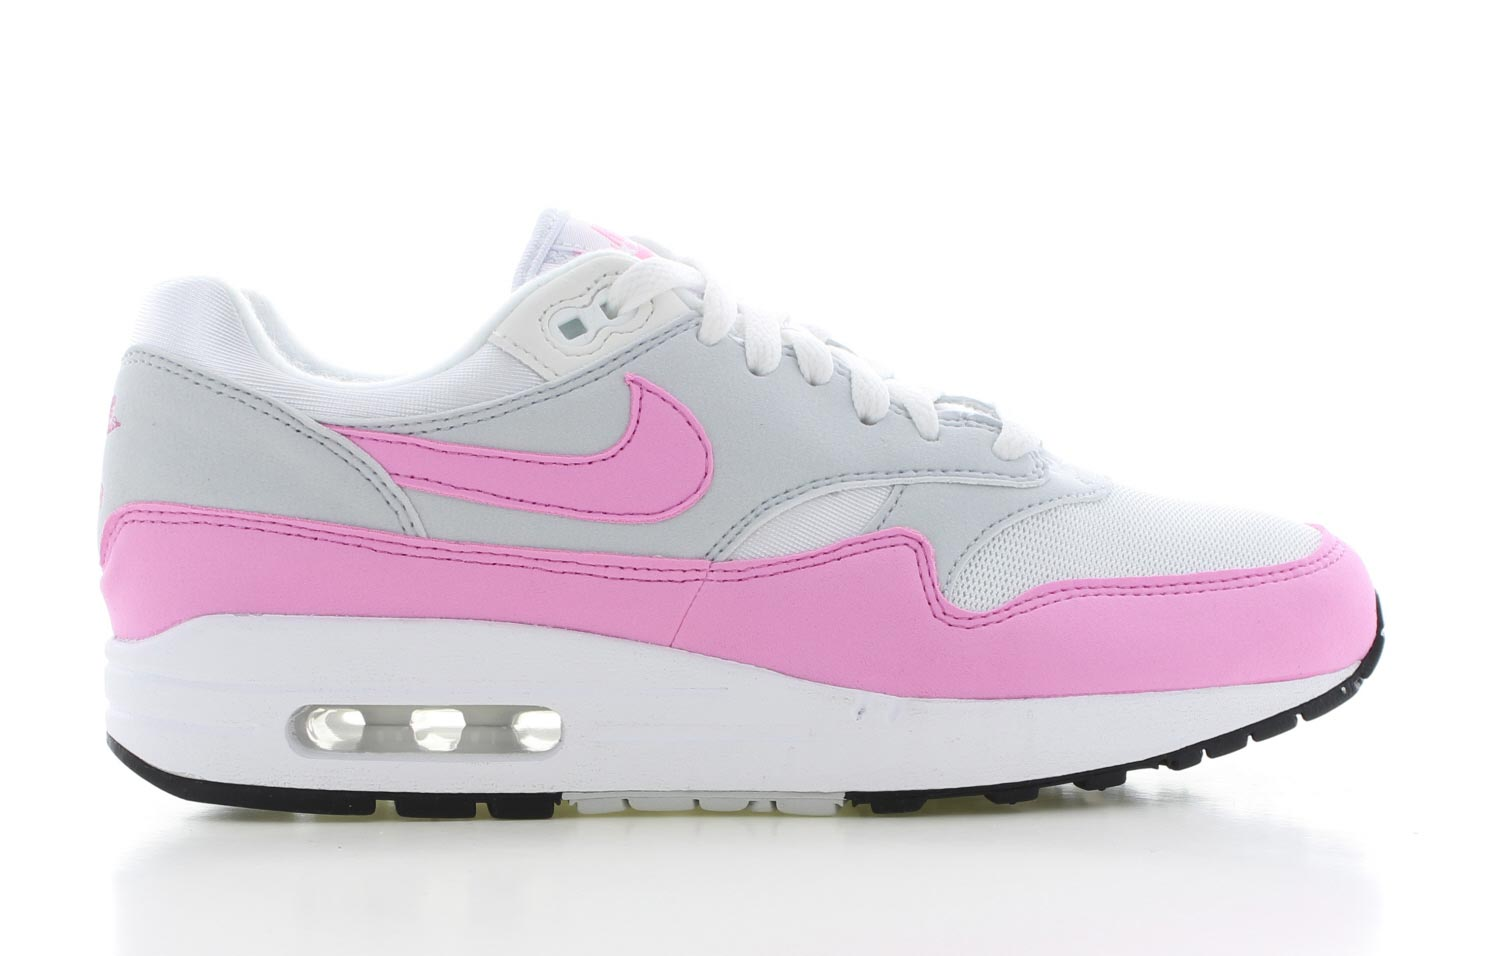 Image of Nike Air Max 1 Wit/roze Dames